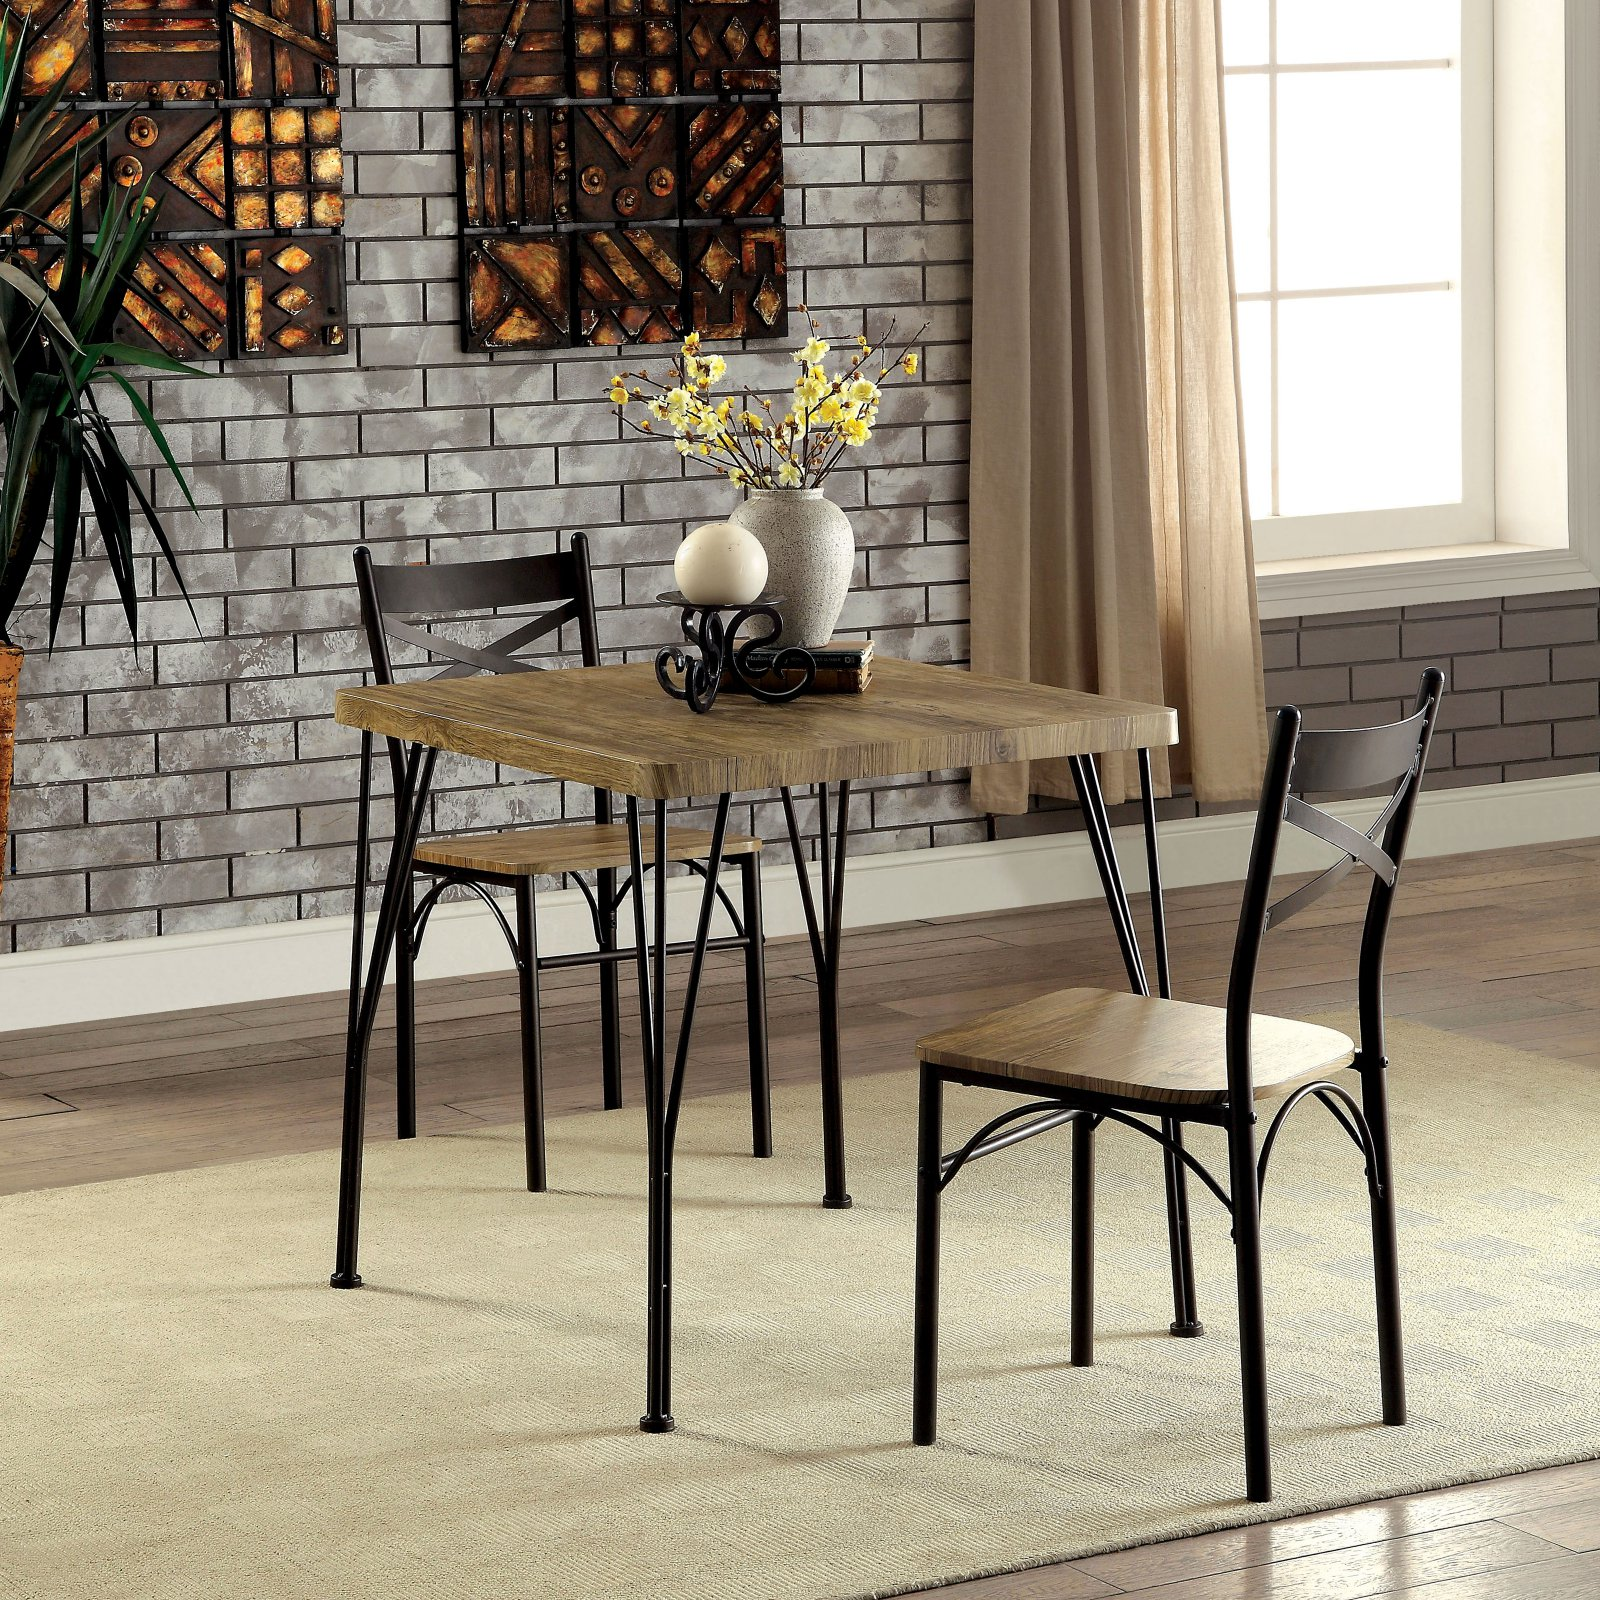 Furniture of America Amonica Industrial Style 3 Piece Casual Dining Set